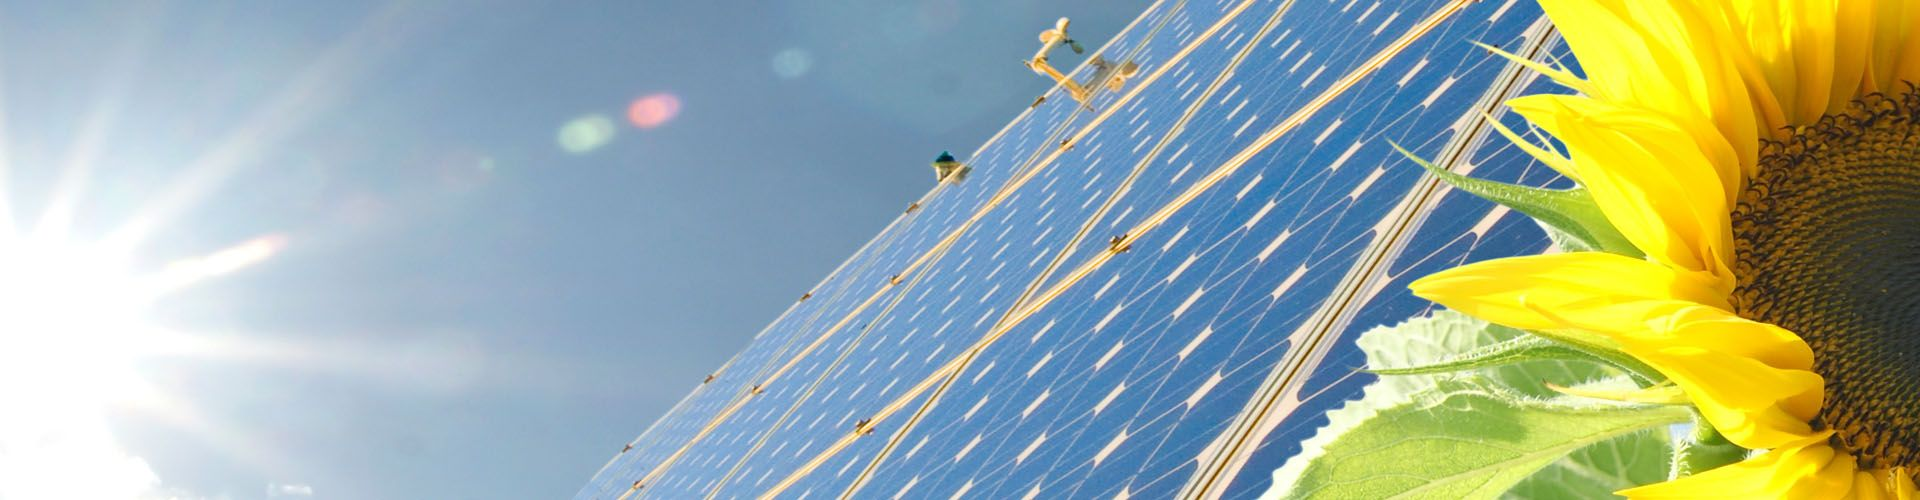 Environmentally Friendly Solar Panels Powering Wollongong